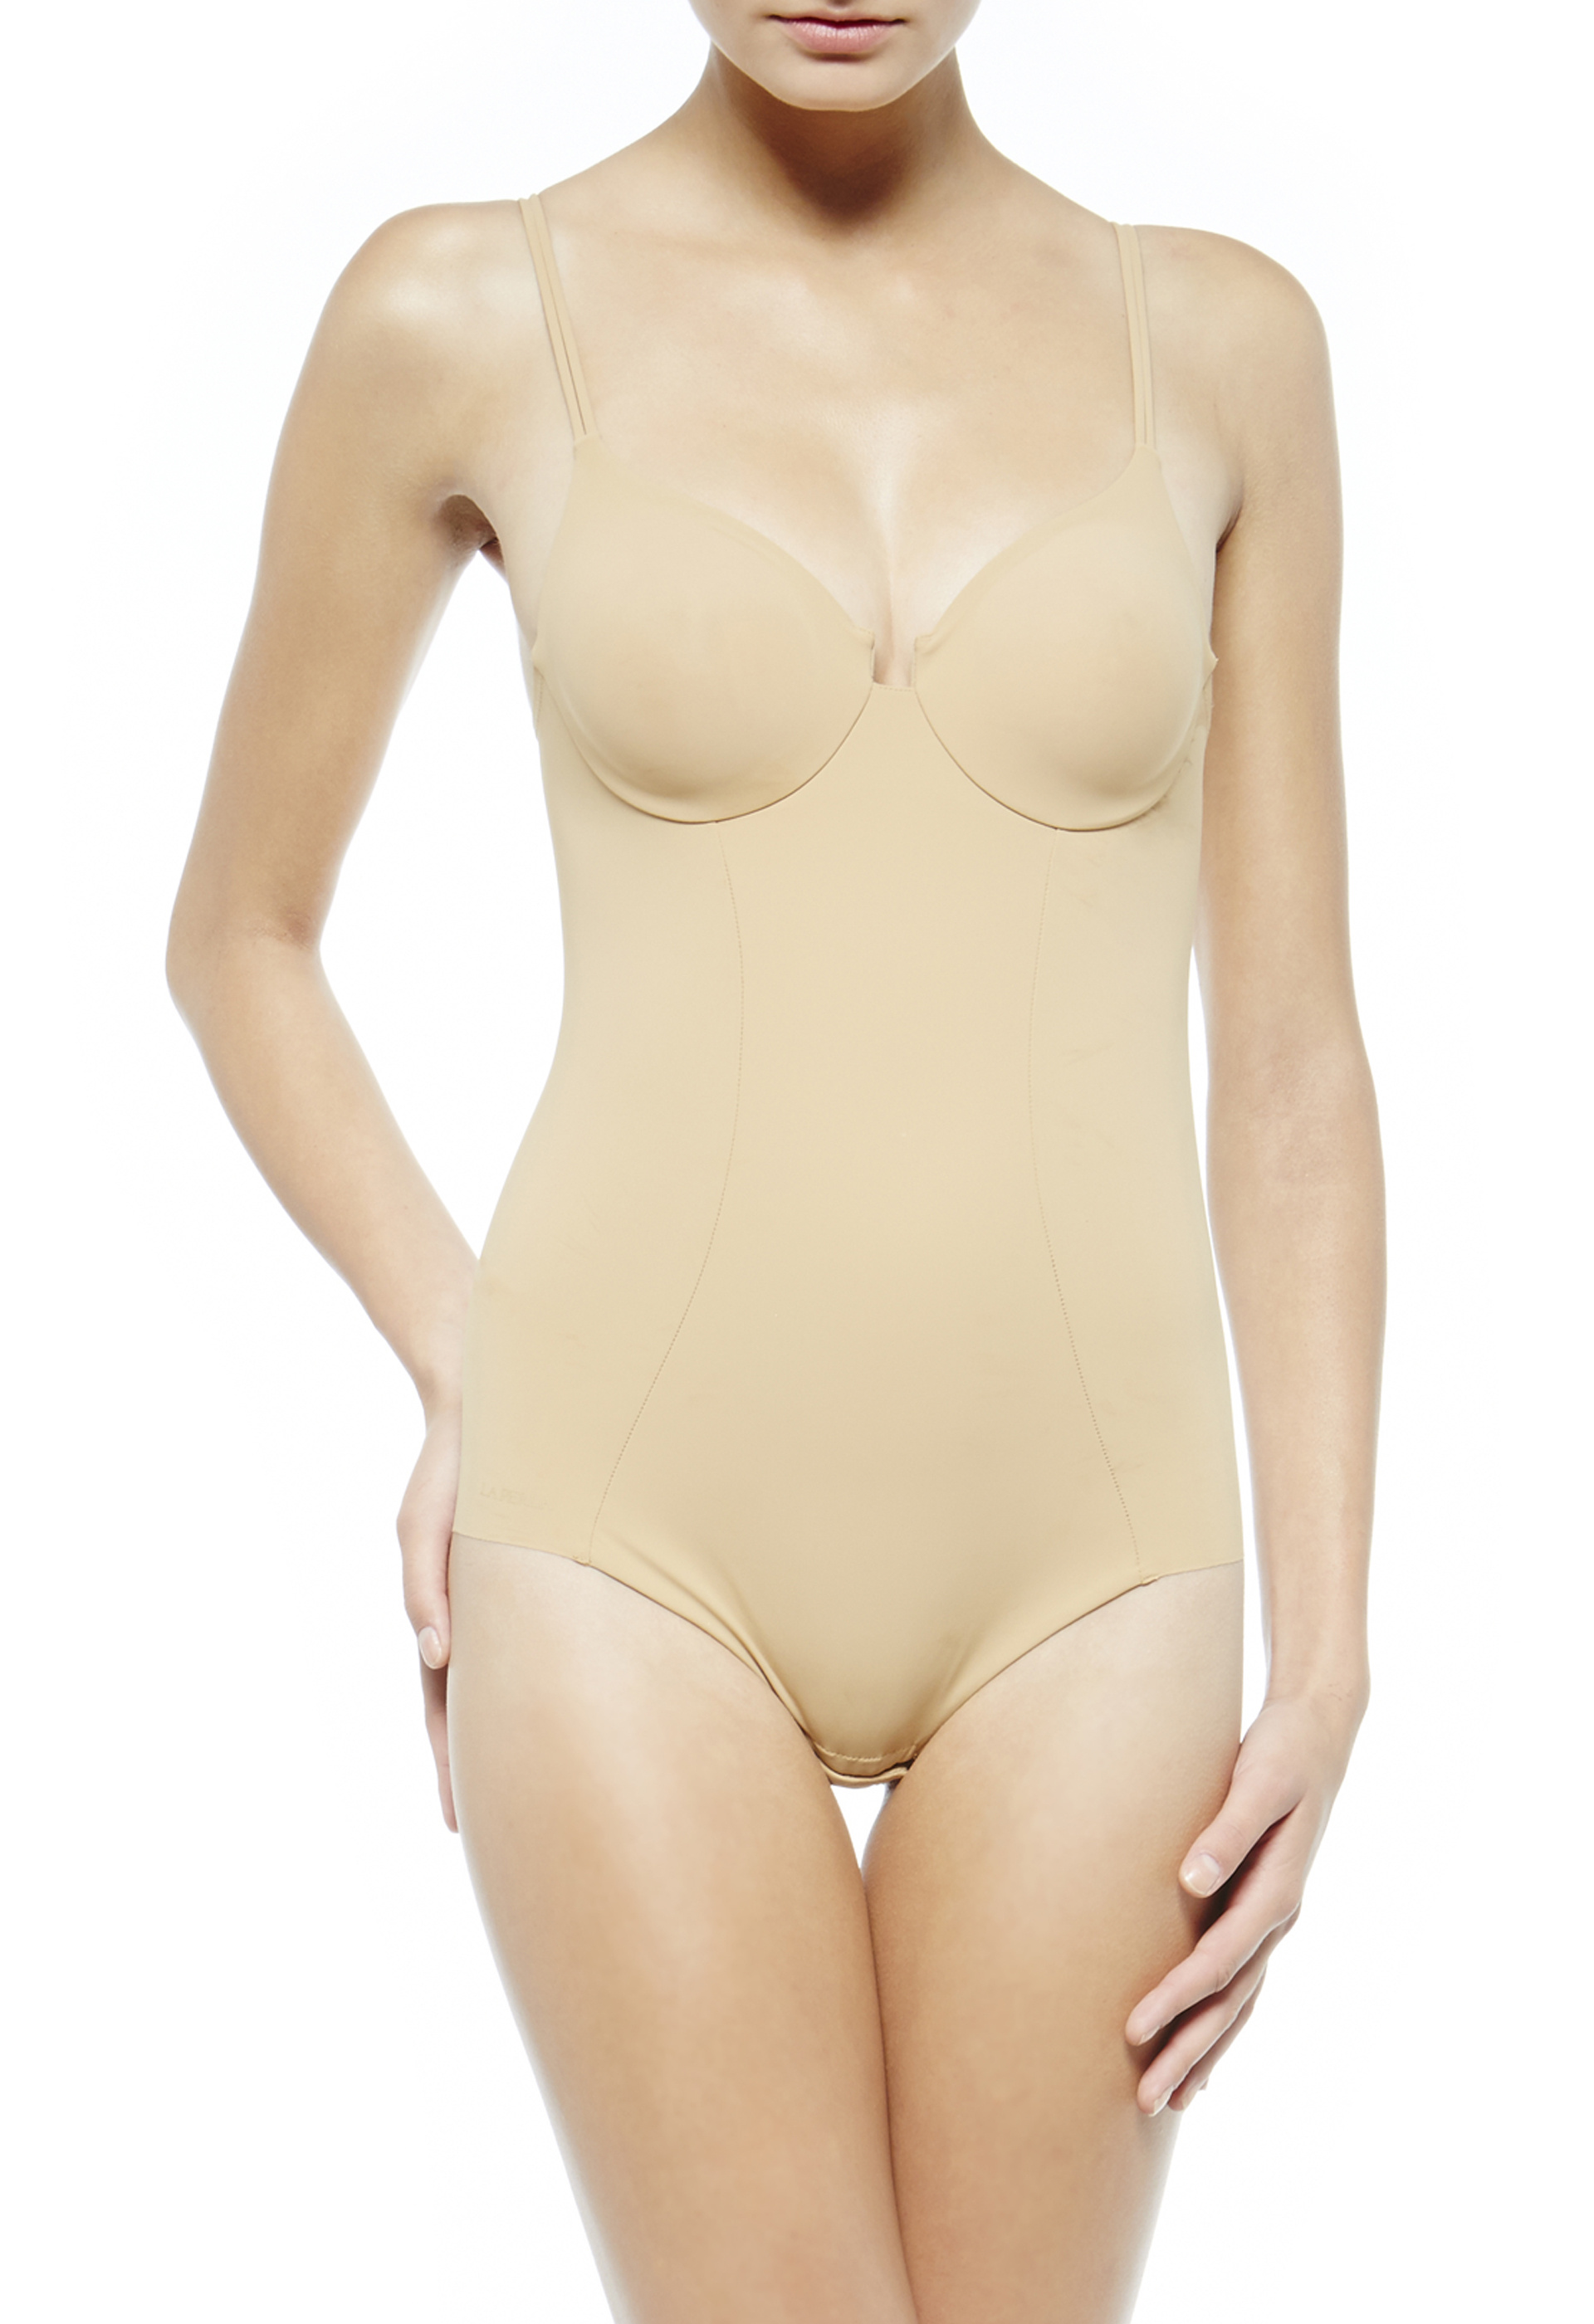 laperla bodysuits 14-25